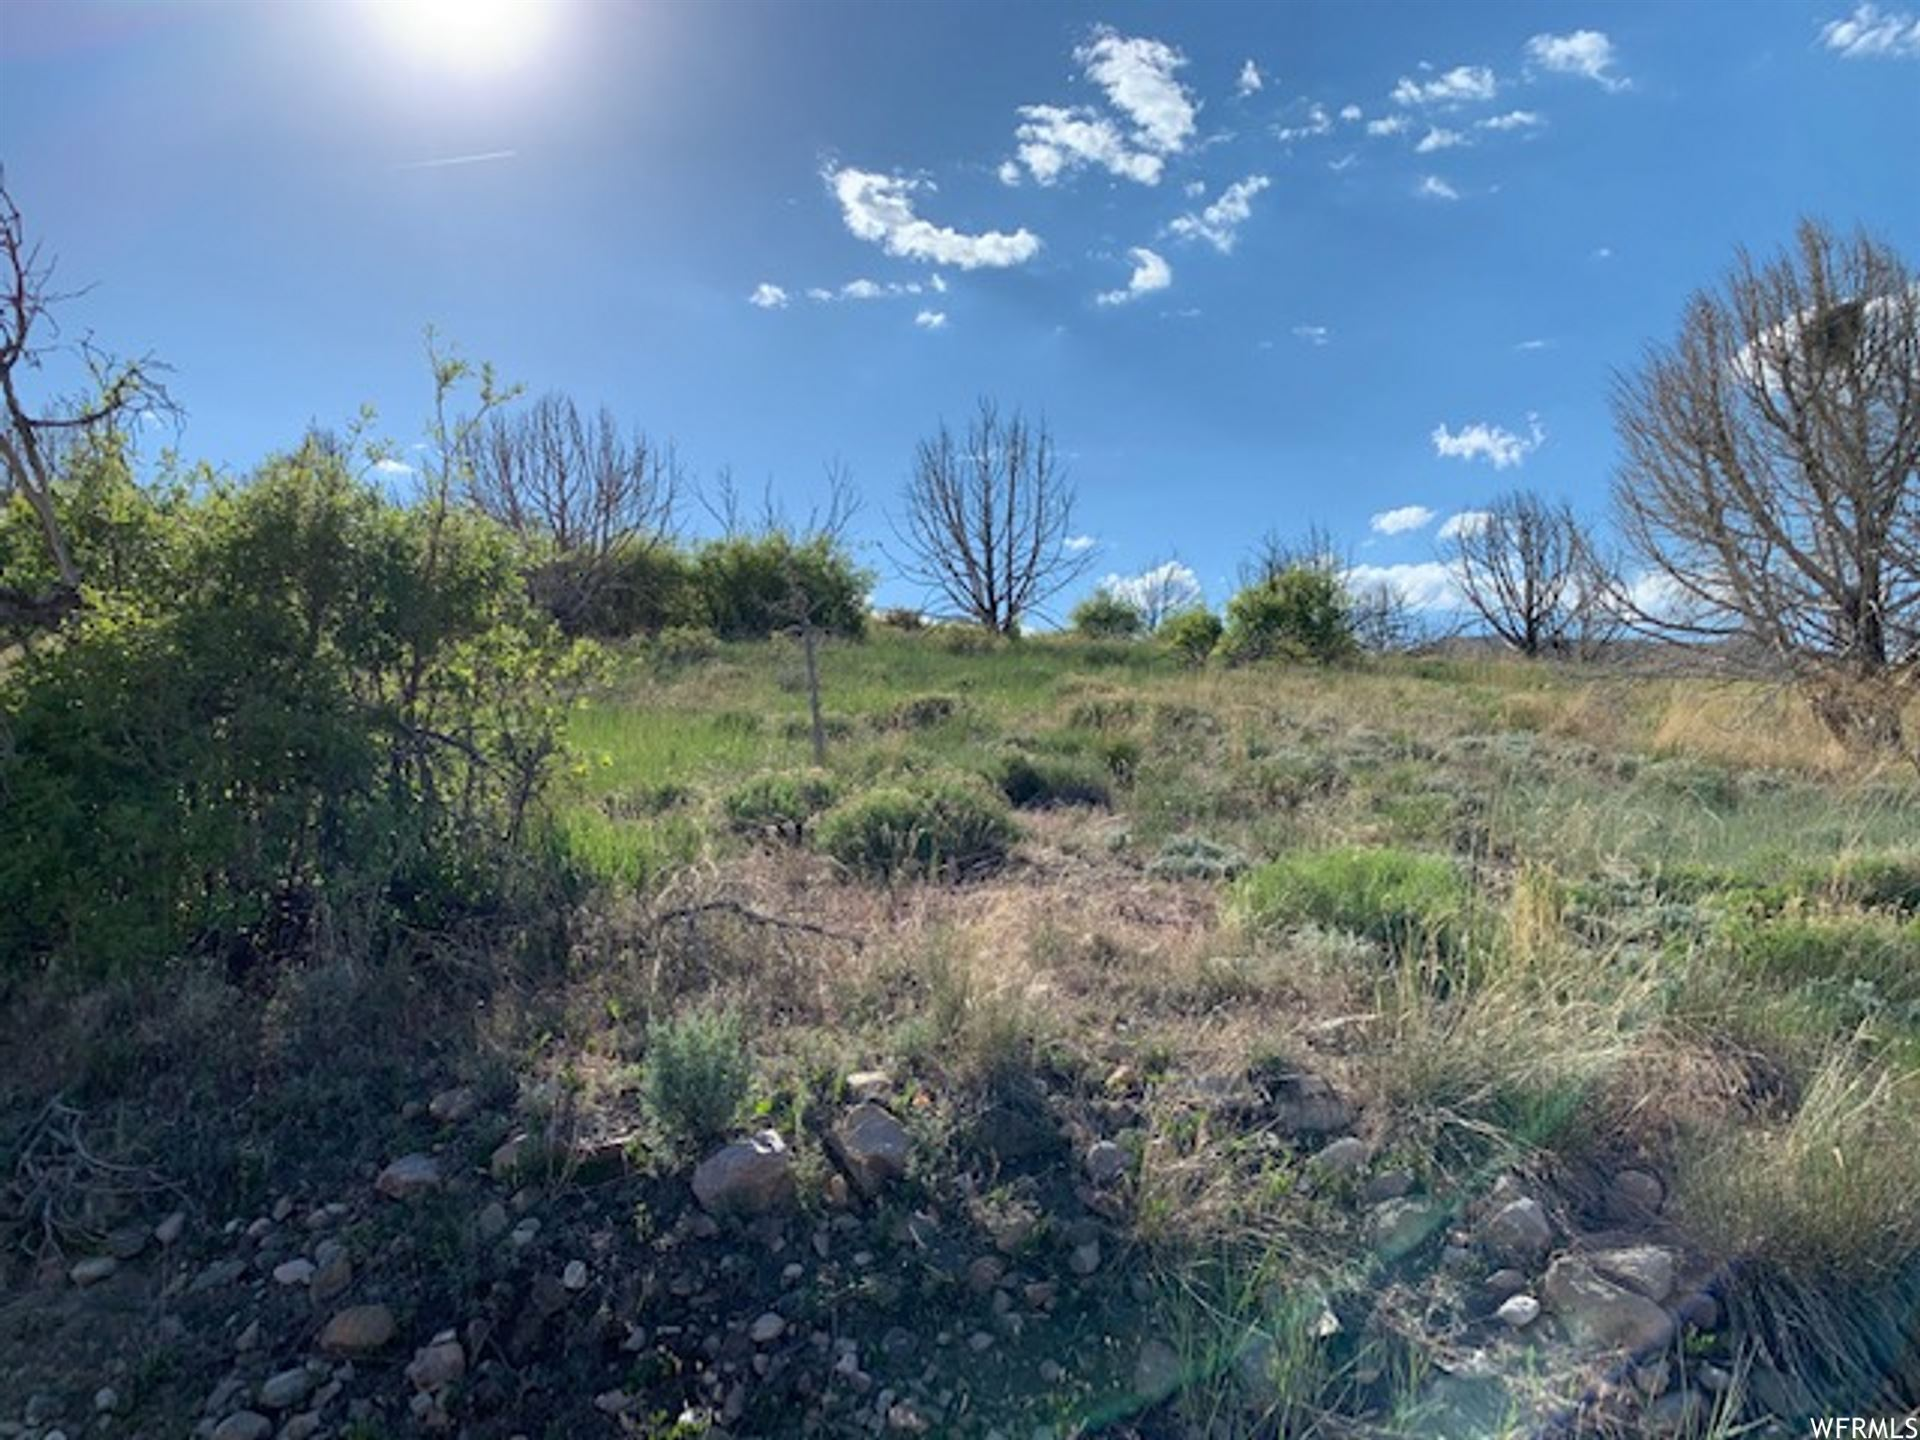 Photo of #234, Indianola, UT 84629 (MLS # 1679314)